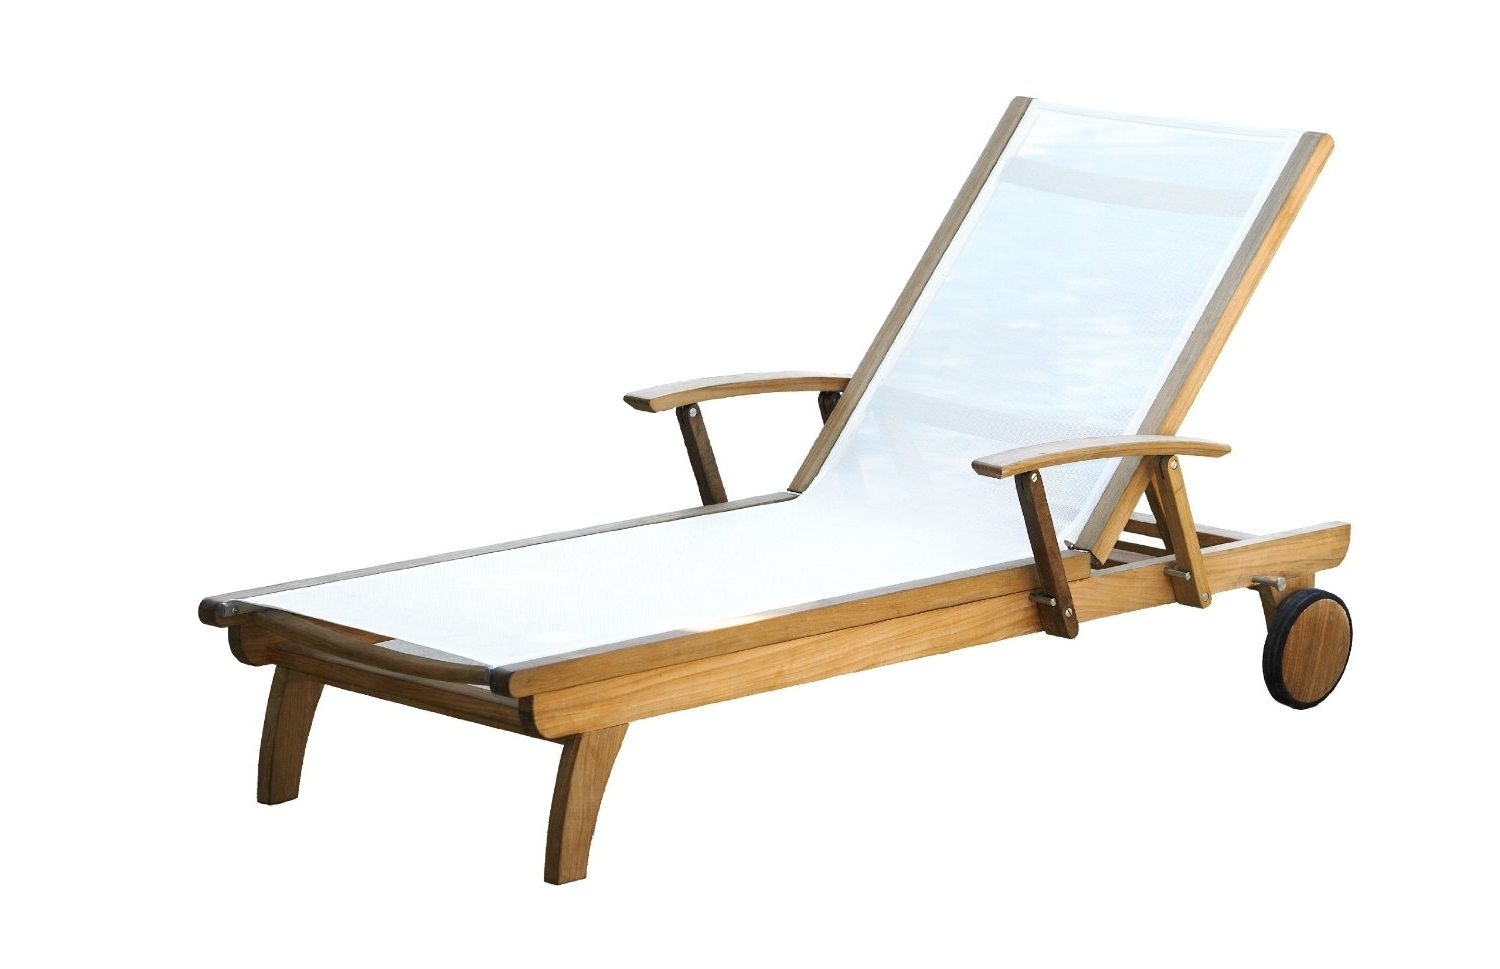 Trendy Lounge Chairs : Inexpensive Outdoor Chaise Lounge Discount Pool Regarding Inexpensive Outdoor Chaise Lounge Chairs (View 14 of 15)